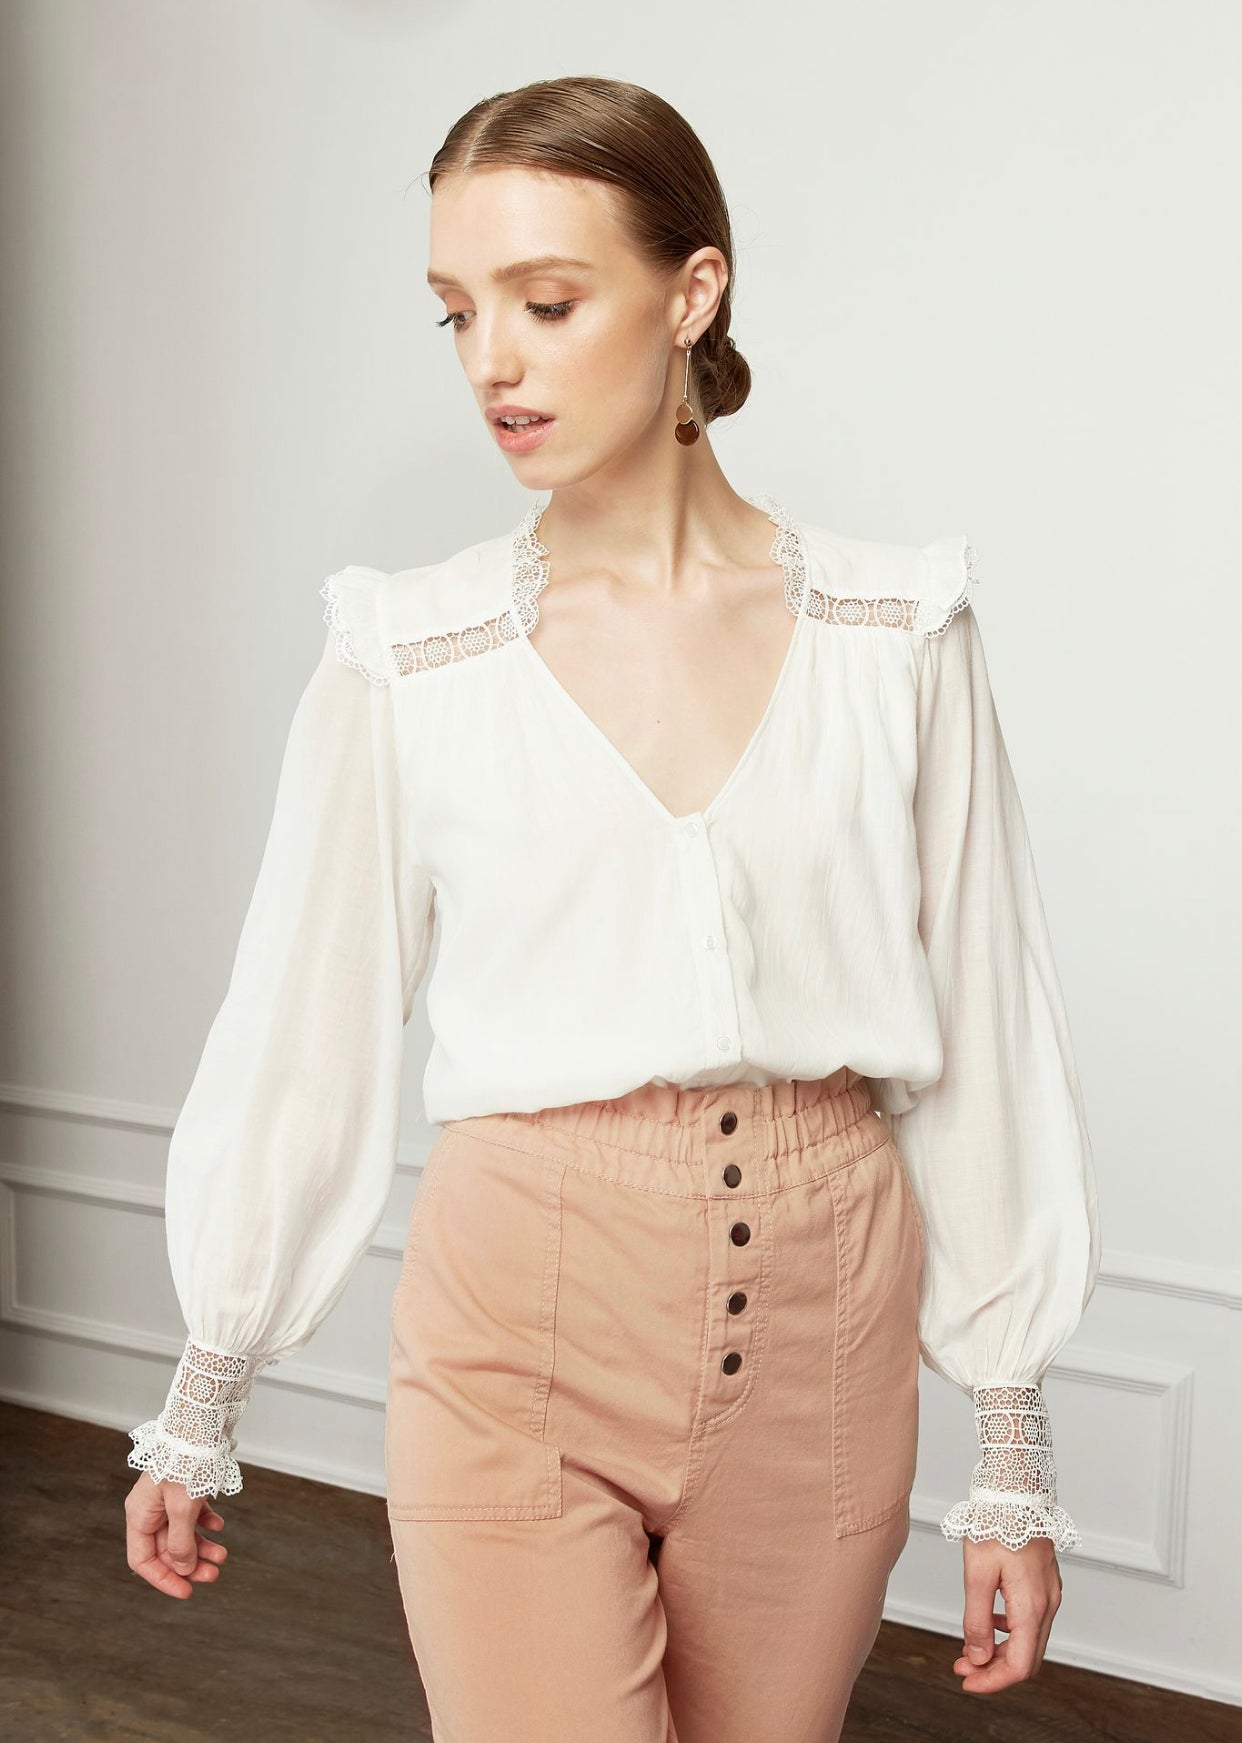 Magali Pascal Henriette Shirt - Off White